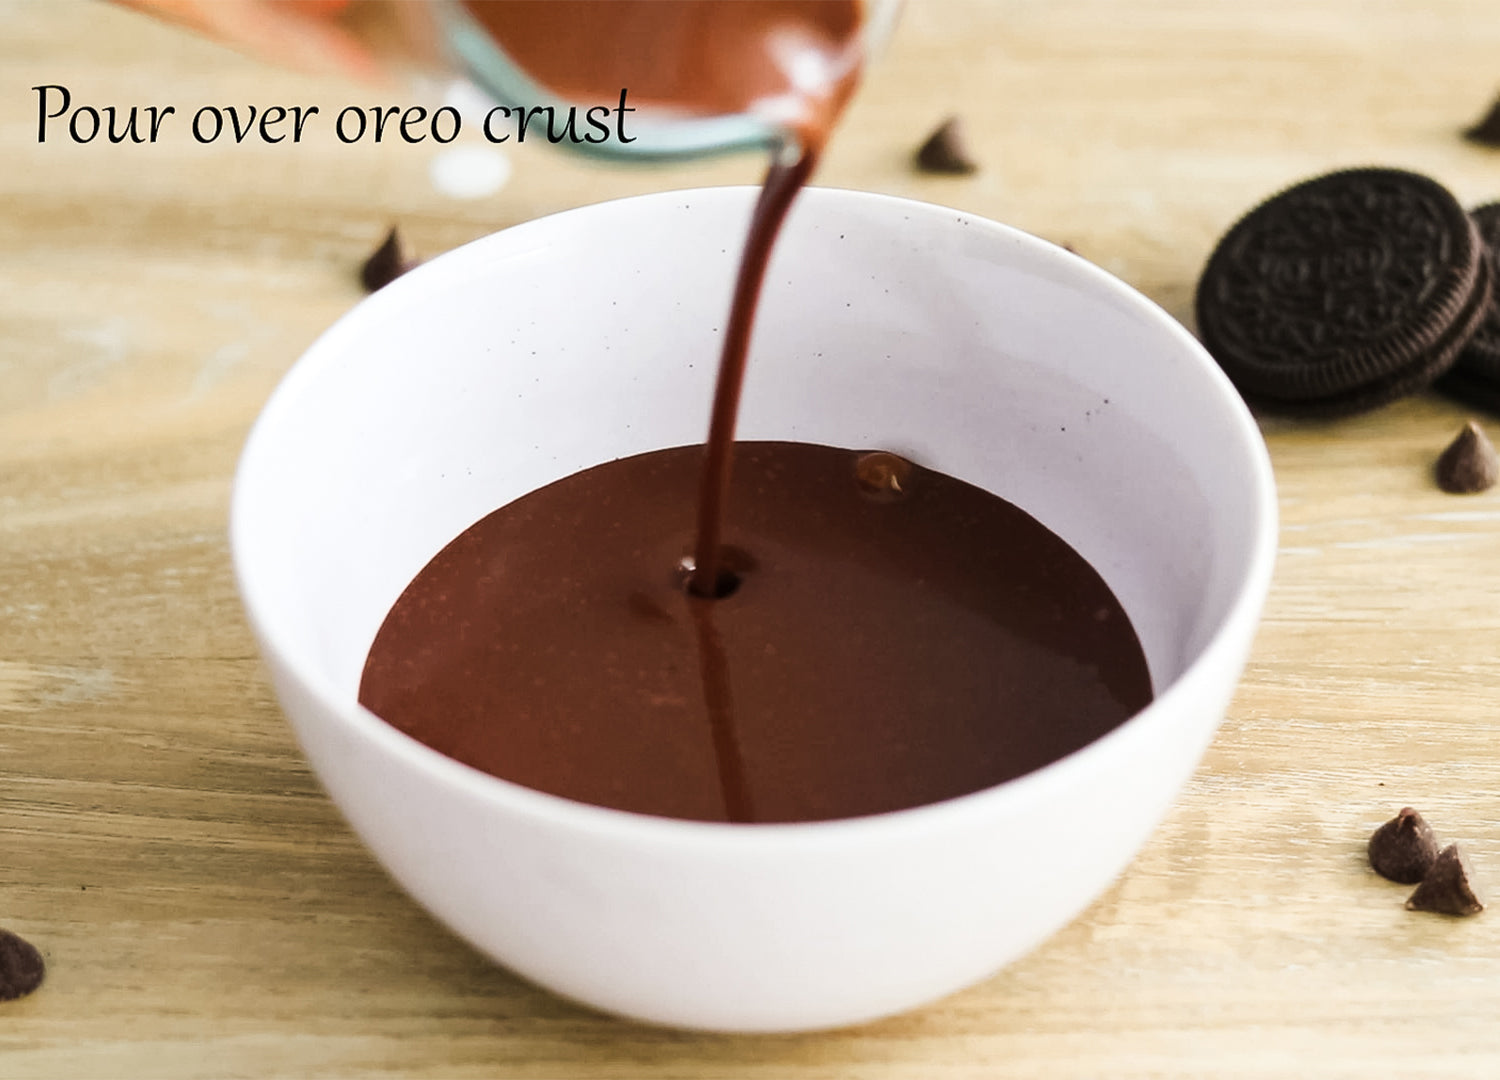 Pour your freshly melted ganache over your oreo crust in your mora ceramics dessert bowl before putting it in the refrigerator to set.